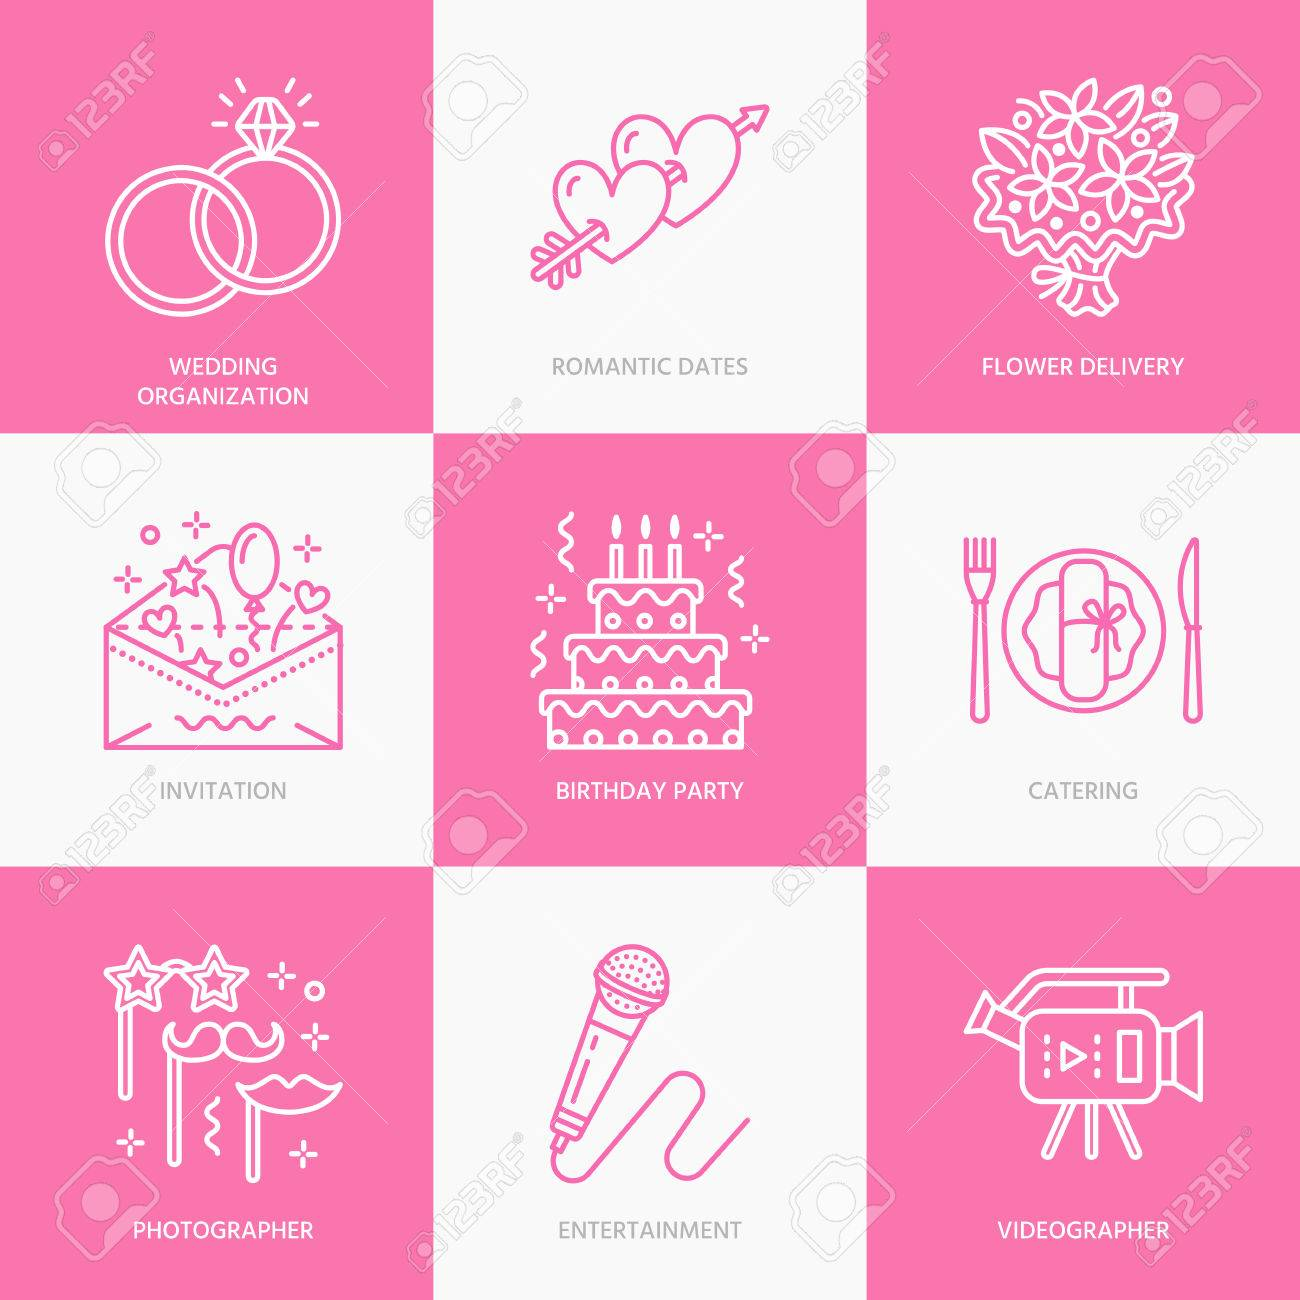 Event agency wedding organization vector line icon party service event agency wedding organization vector line icon party service catering birthday cake junglespirit Image collections